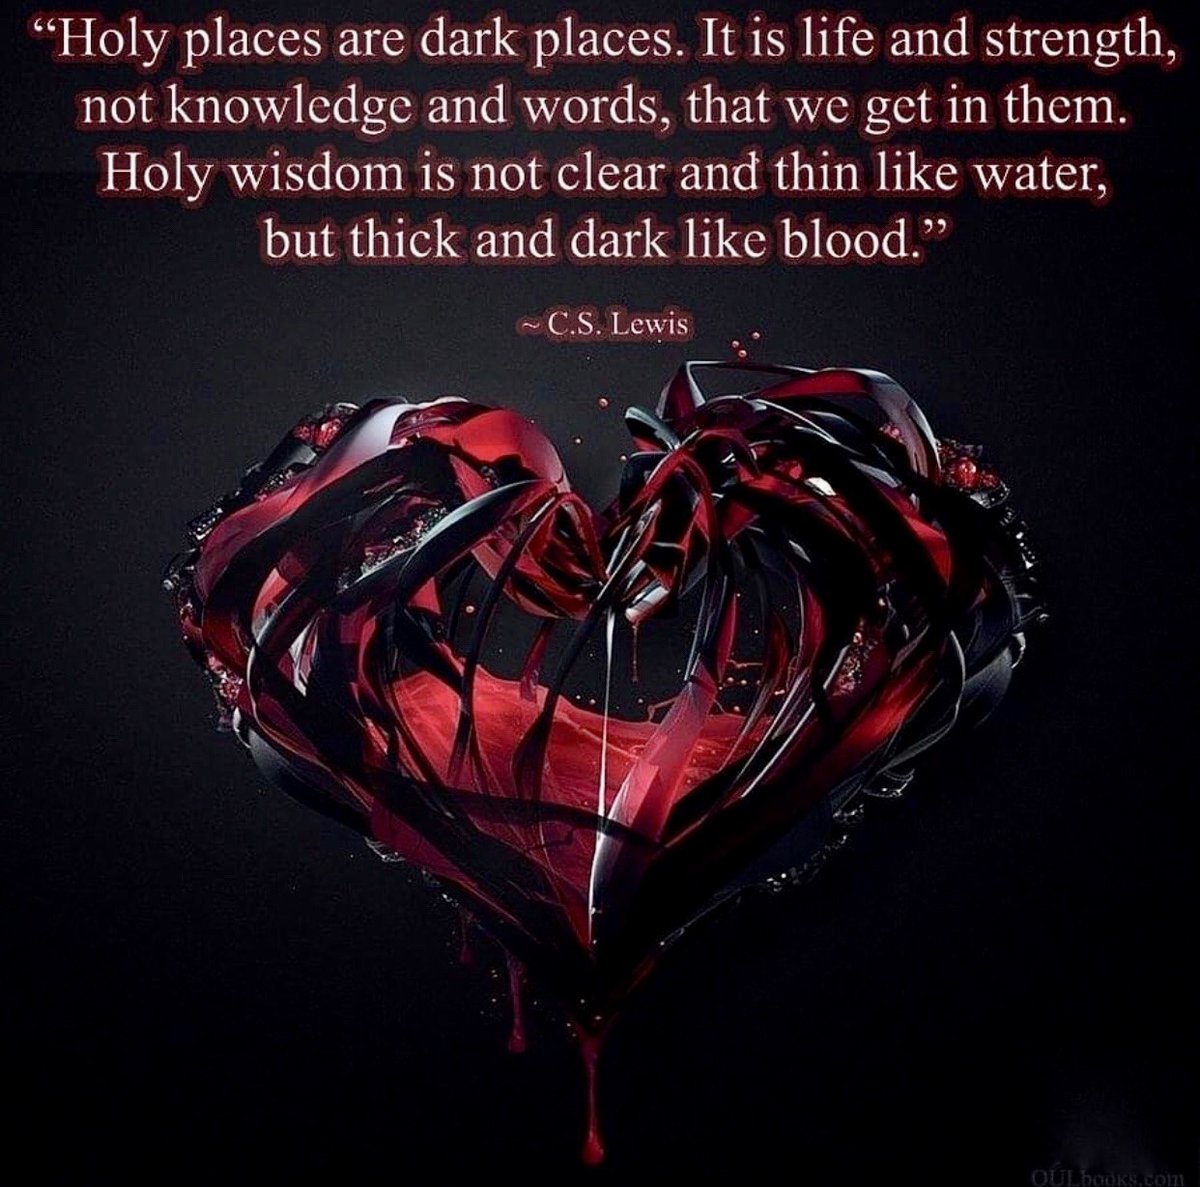 """C.S.Lewis""""Holy places are dark places. it is life and strength, not knowledge and words, that we get in them. holy wisdom is not clear and thin like water, but thick and dark like blood"""" #quotes #quotesoftheday #quotesaboutlife https://t.co/sdLlaTgWjT"""